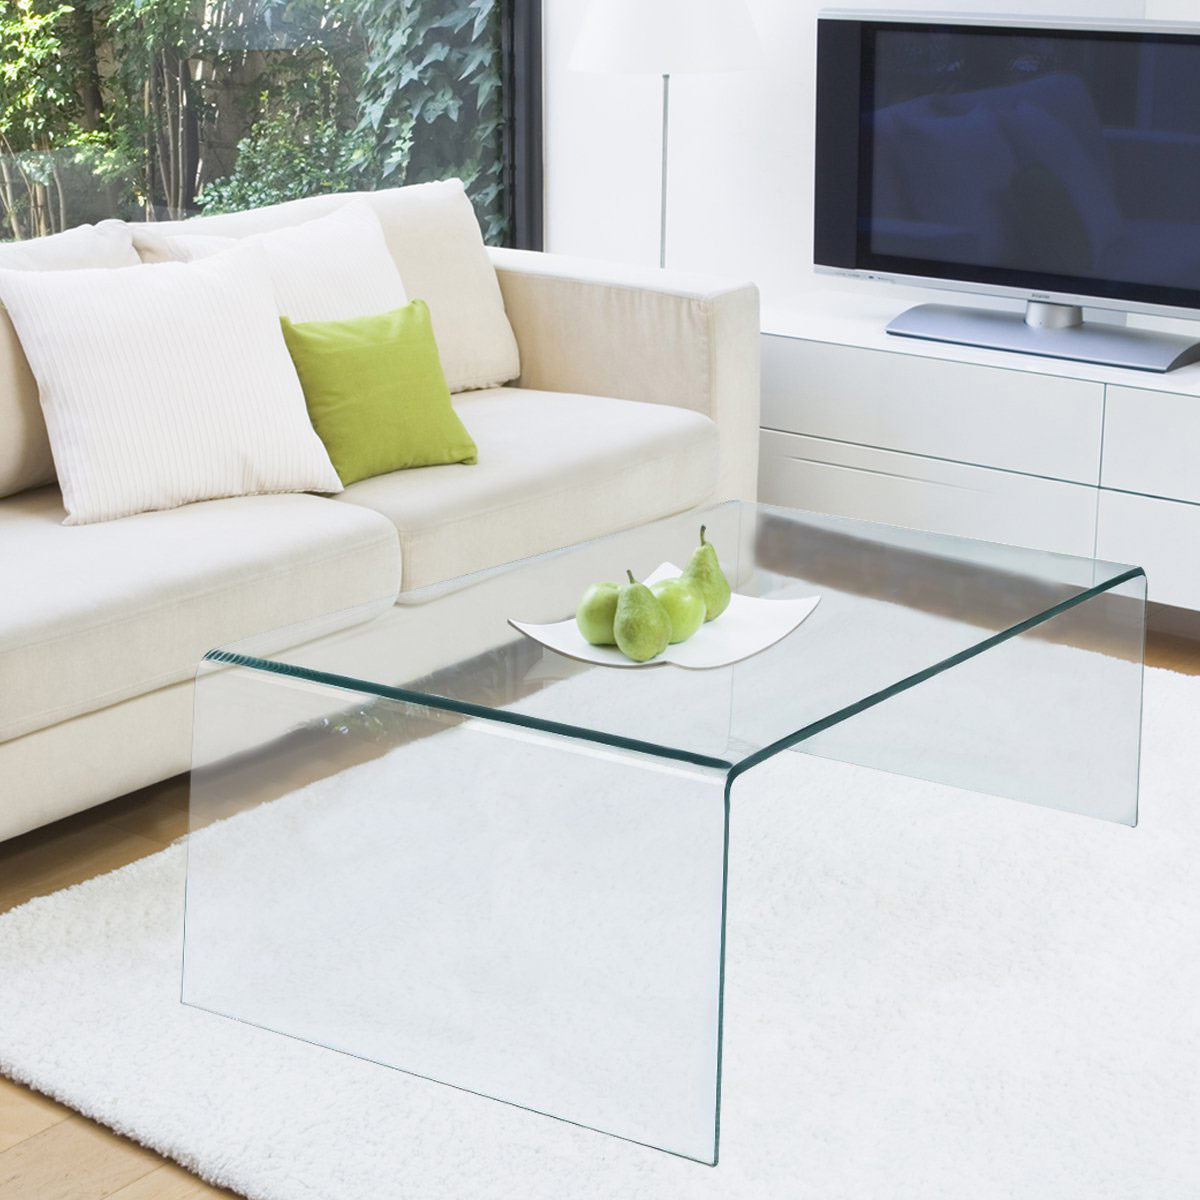 Trendy Contemporary Curves Coffee Tables Throughout The Best Glass Coffee Tables Under $ (View 11 of 20)